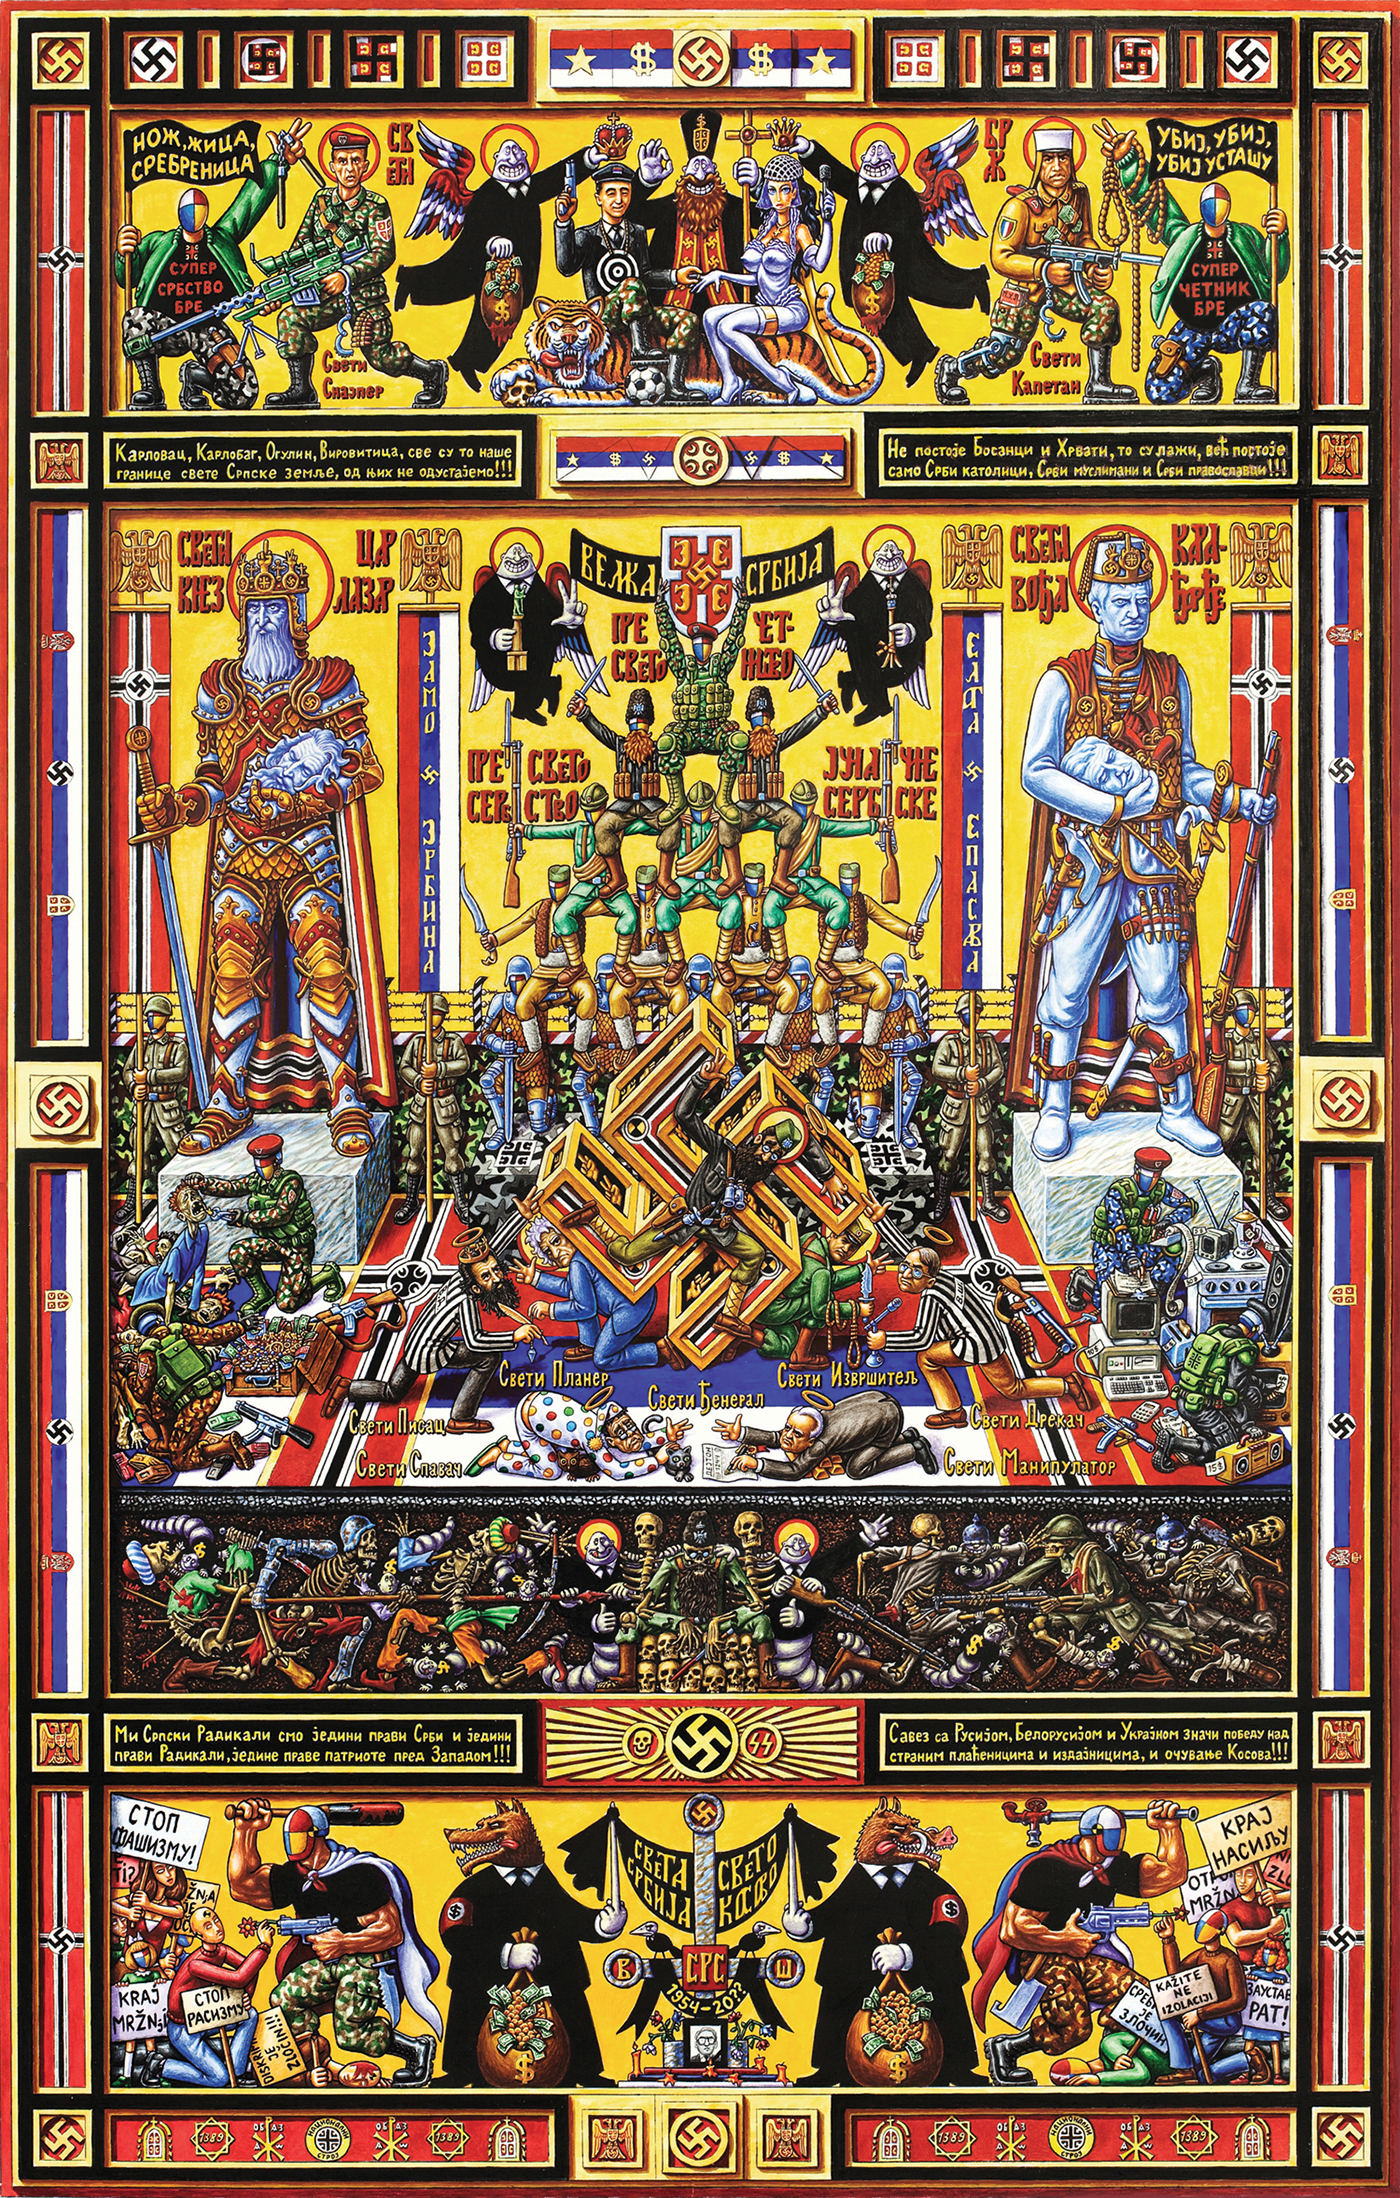 Iconostasis of Serbisms- Serbonazism